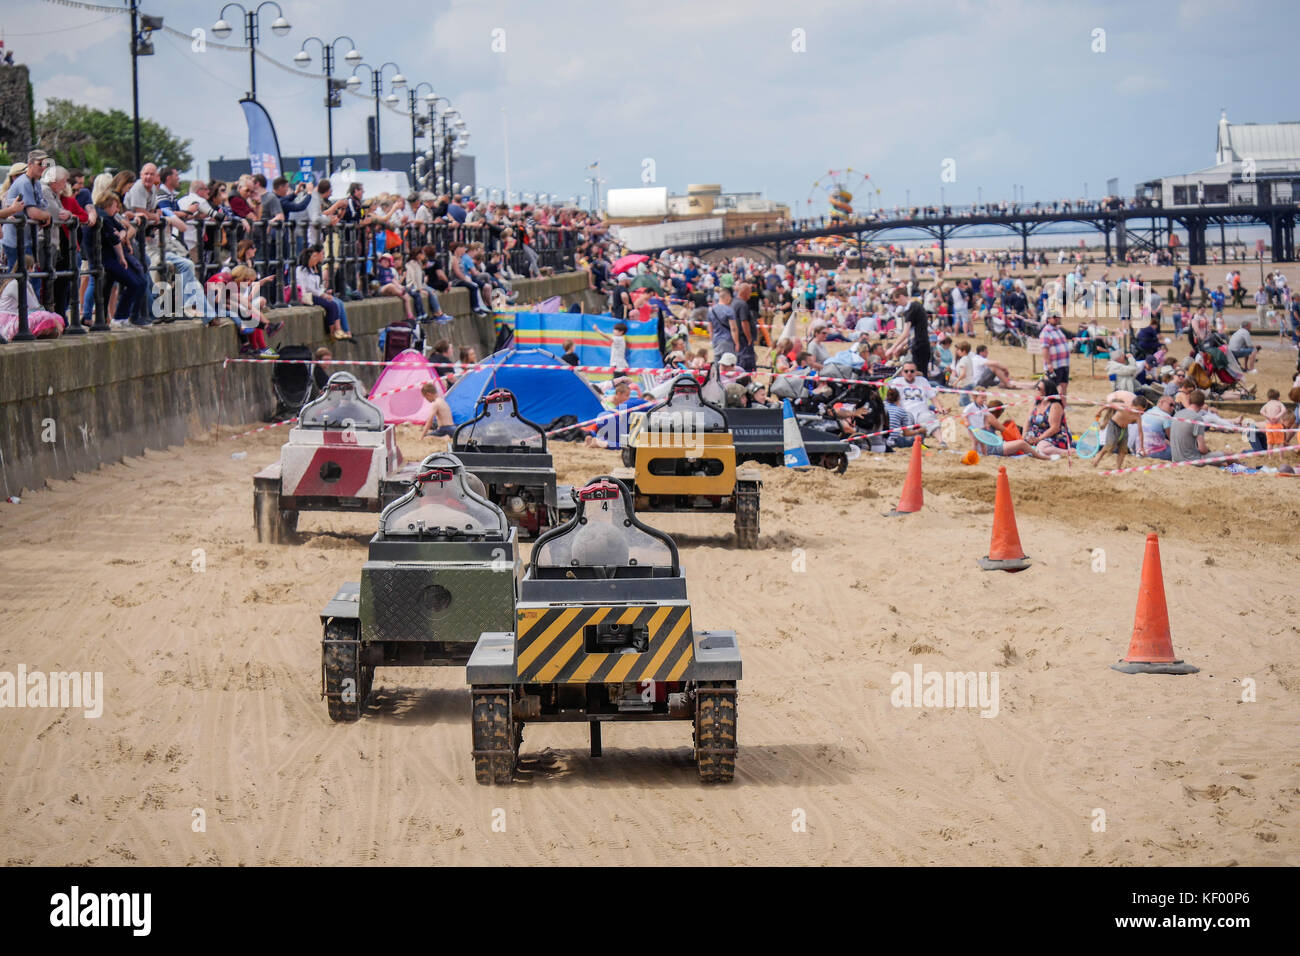 Children play in miniature model tanks on the beach at The National Armed Forces Day, Cleethorpes 2016 - Stock Image